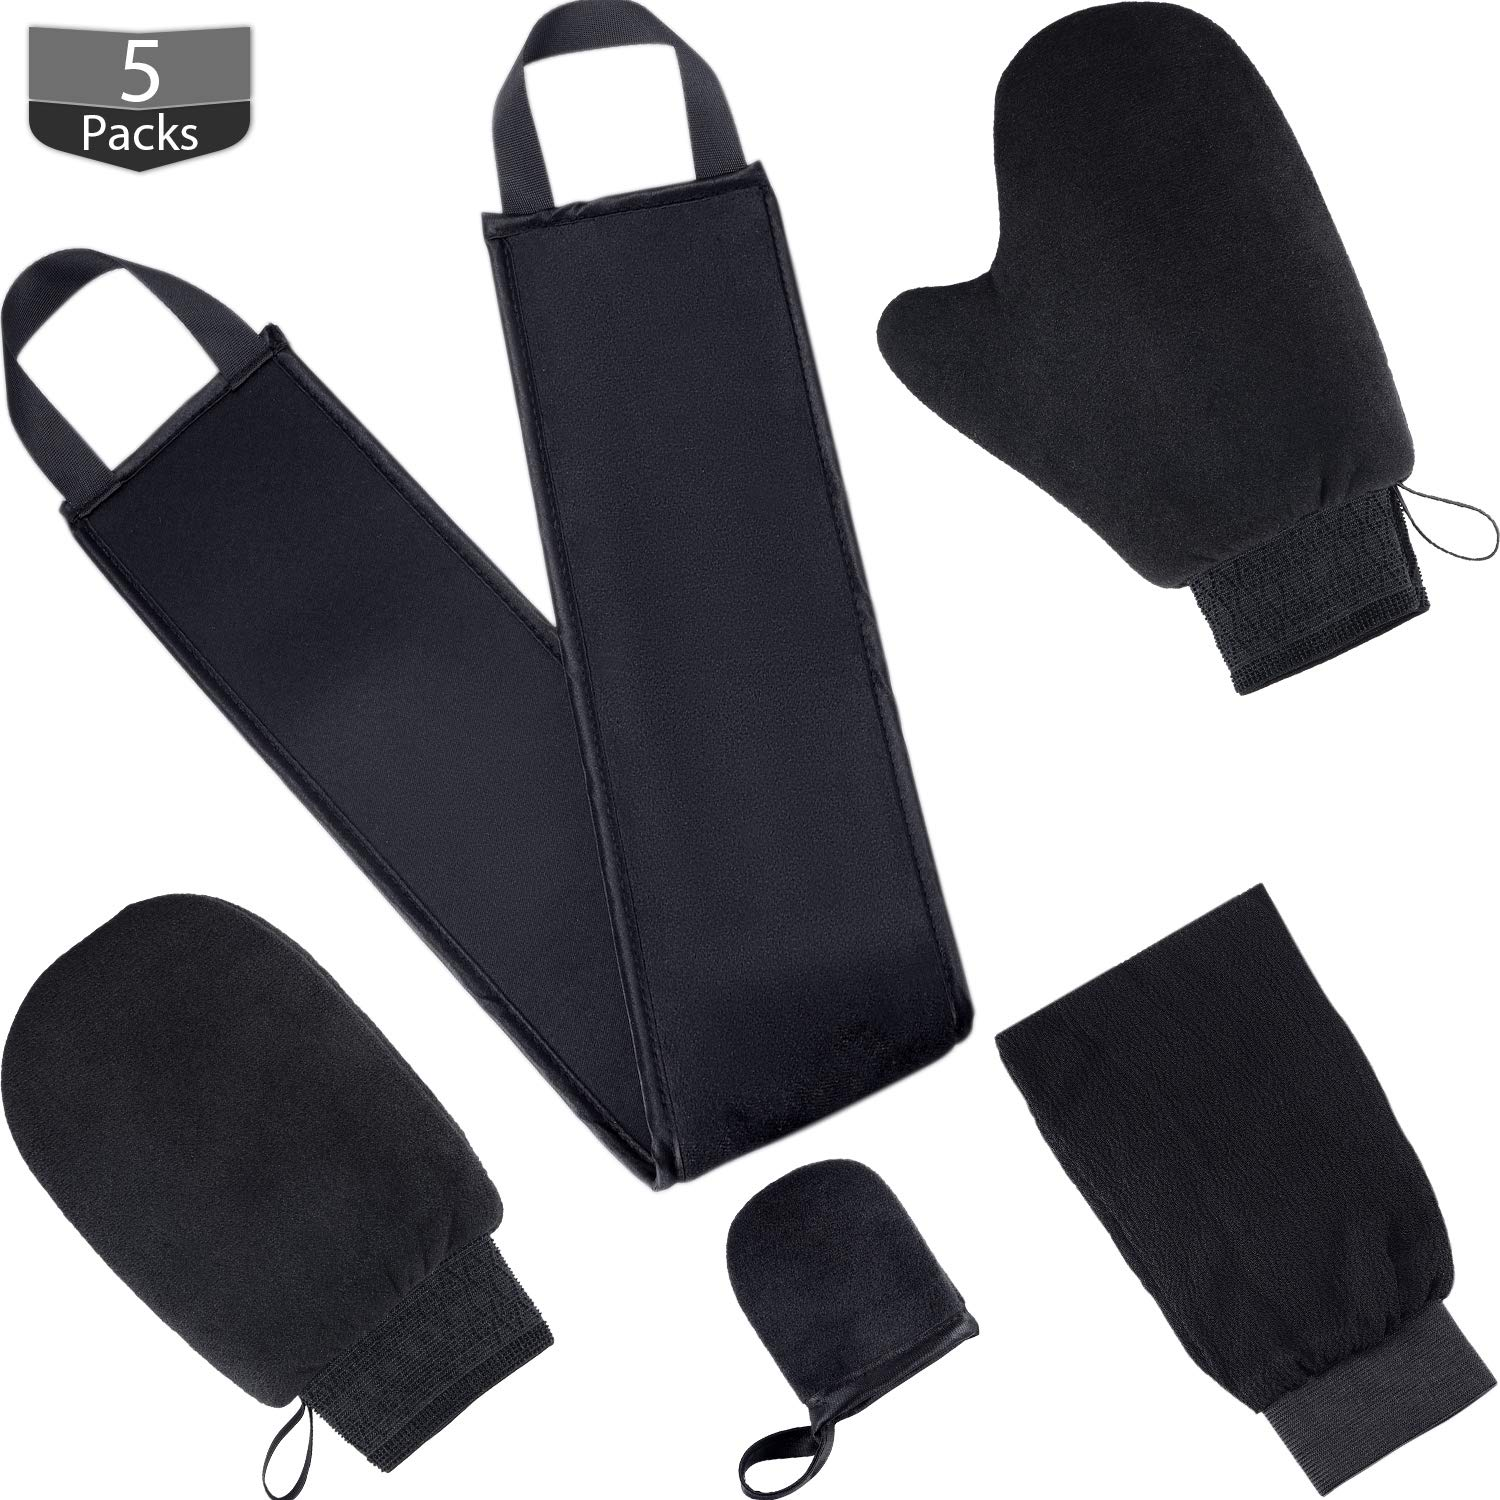 Amazon Com Tanning Mitt Applicator Tan Mitt Applicator Kit 5 In 1 With Exfoliating Glove Tanning Back Lotion Applicators For Back Face Mitt And 2 Kinds Of Gloves Tanner Mitt Tools Black Beauty